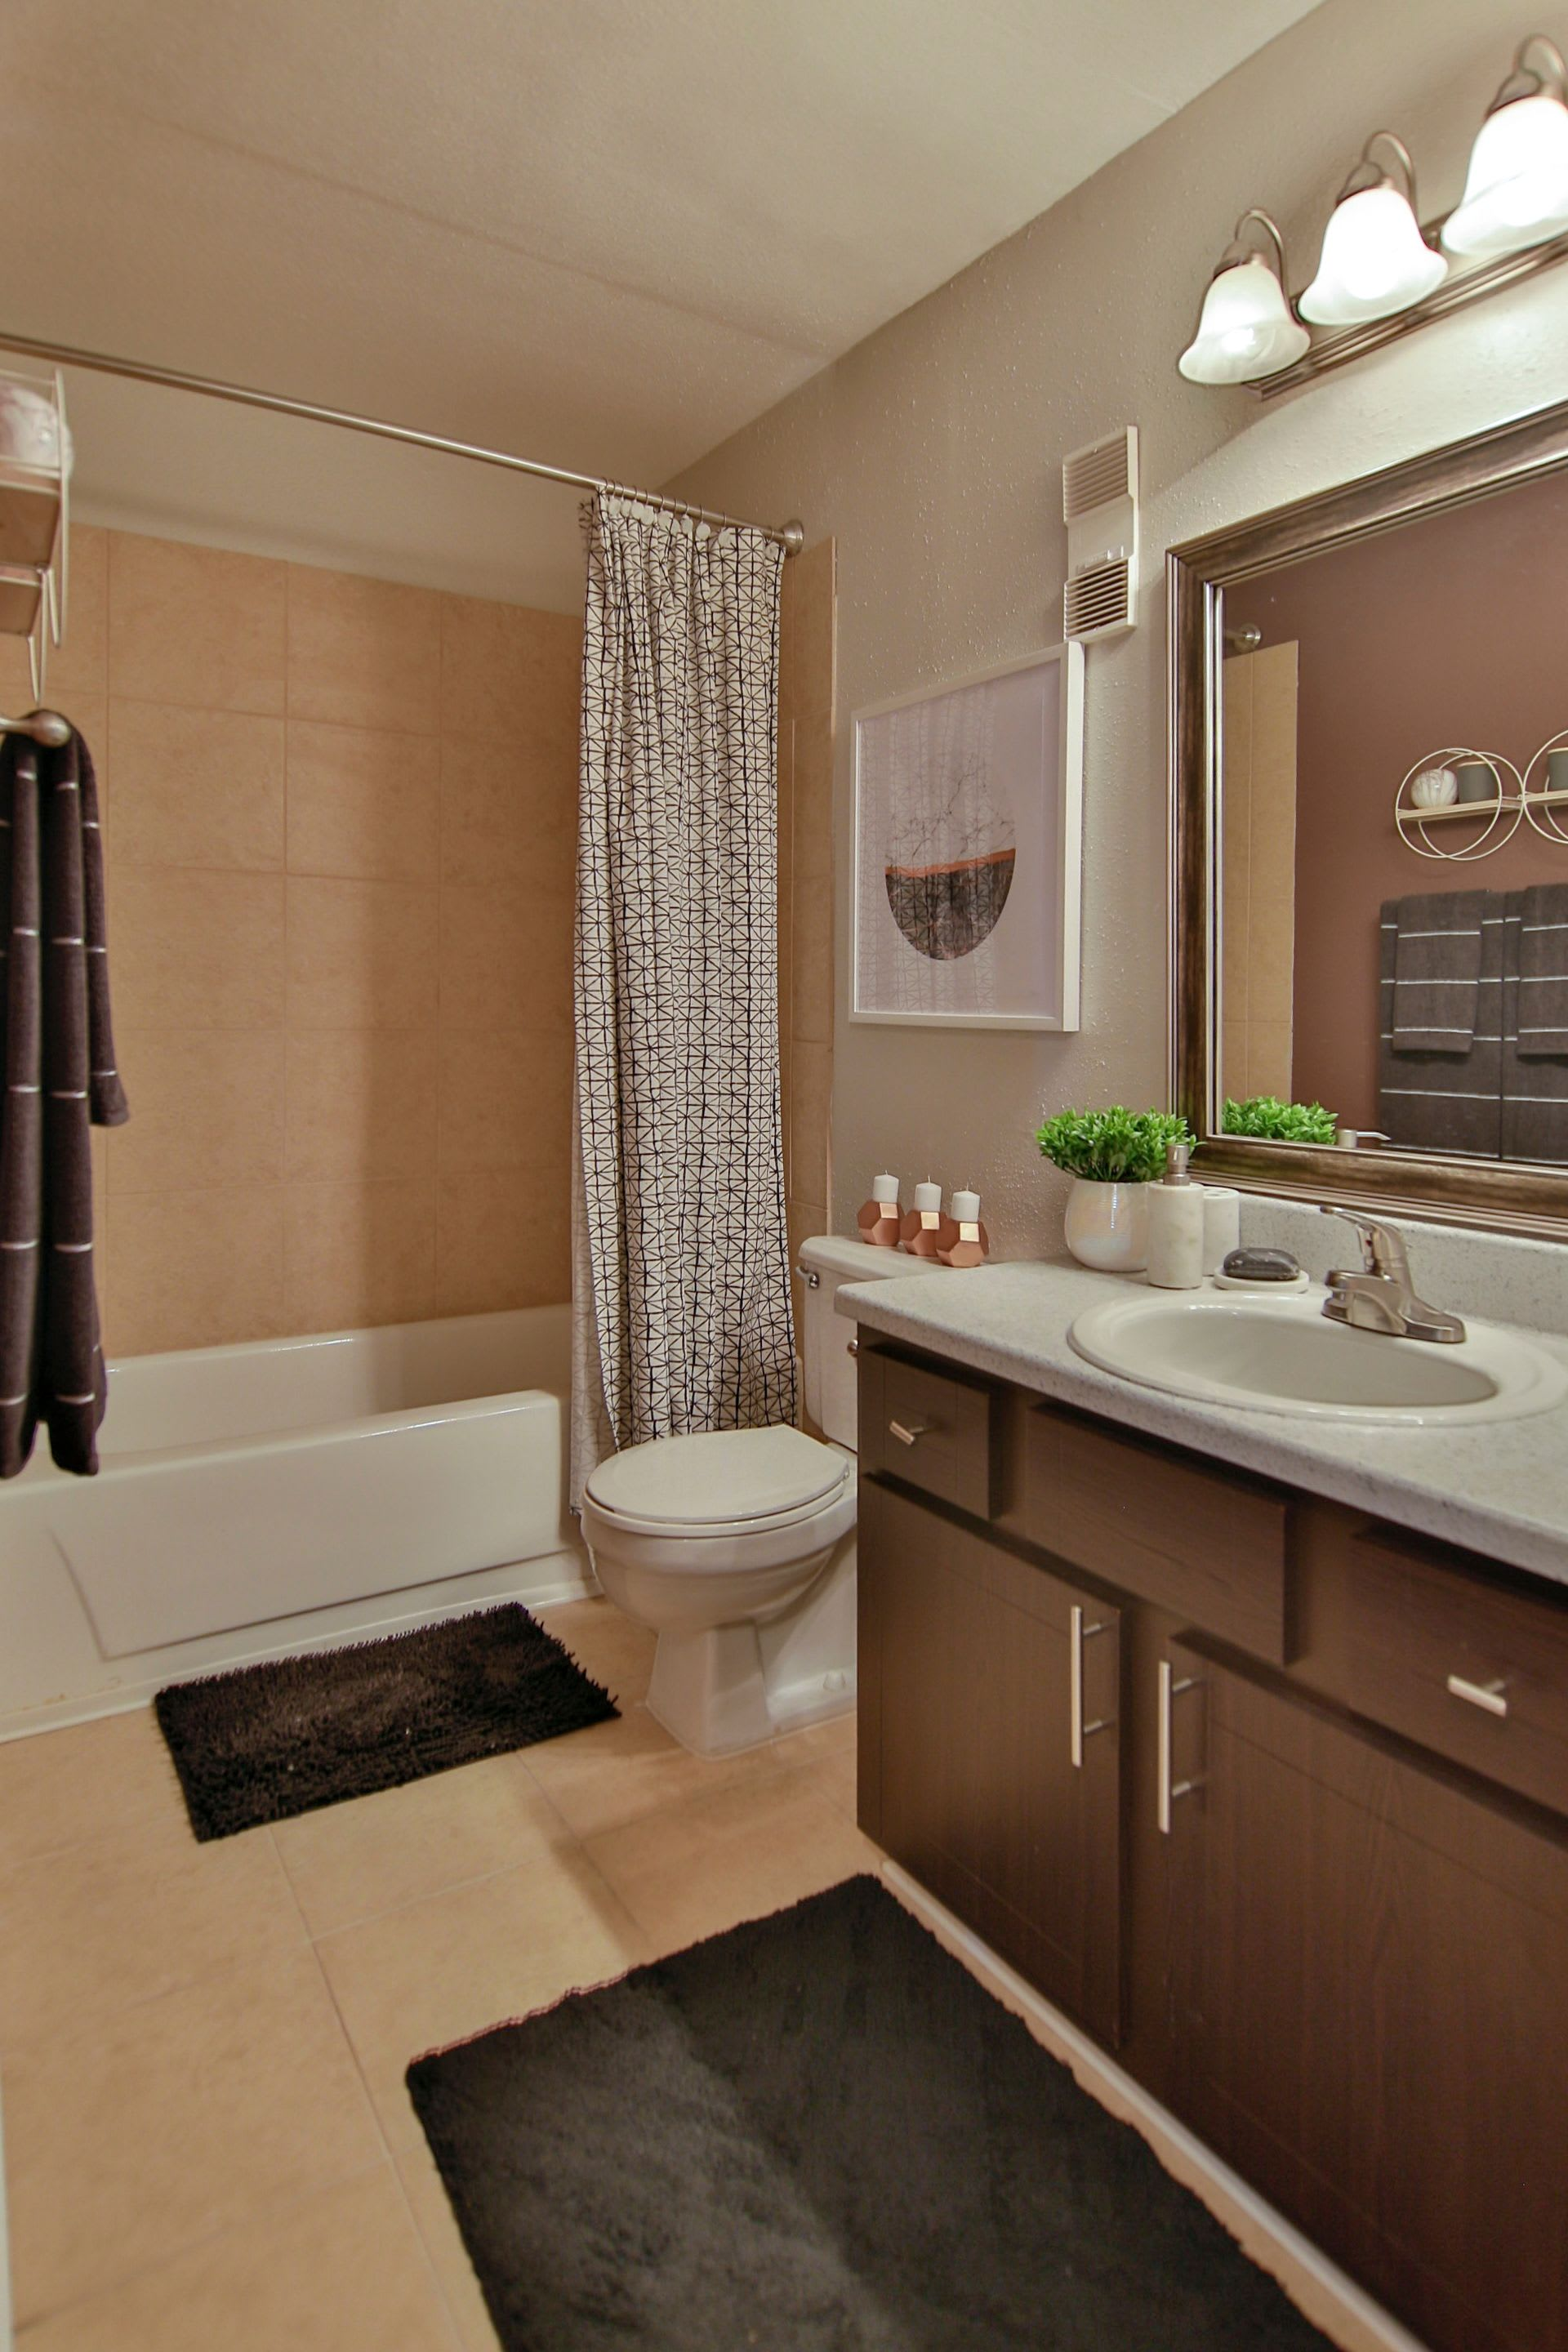 Master bathroom in model home at Allegro on Bell in Antioch, Tennessee